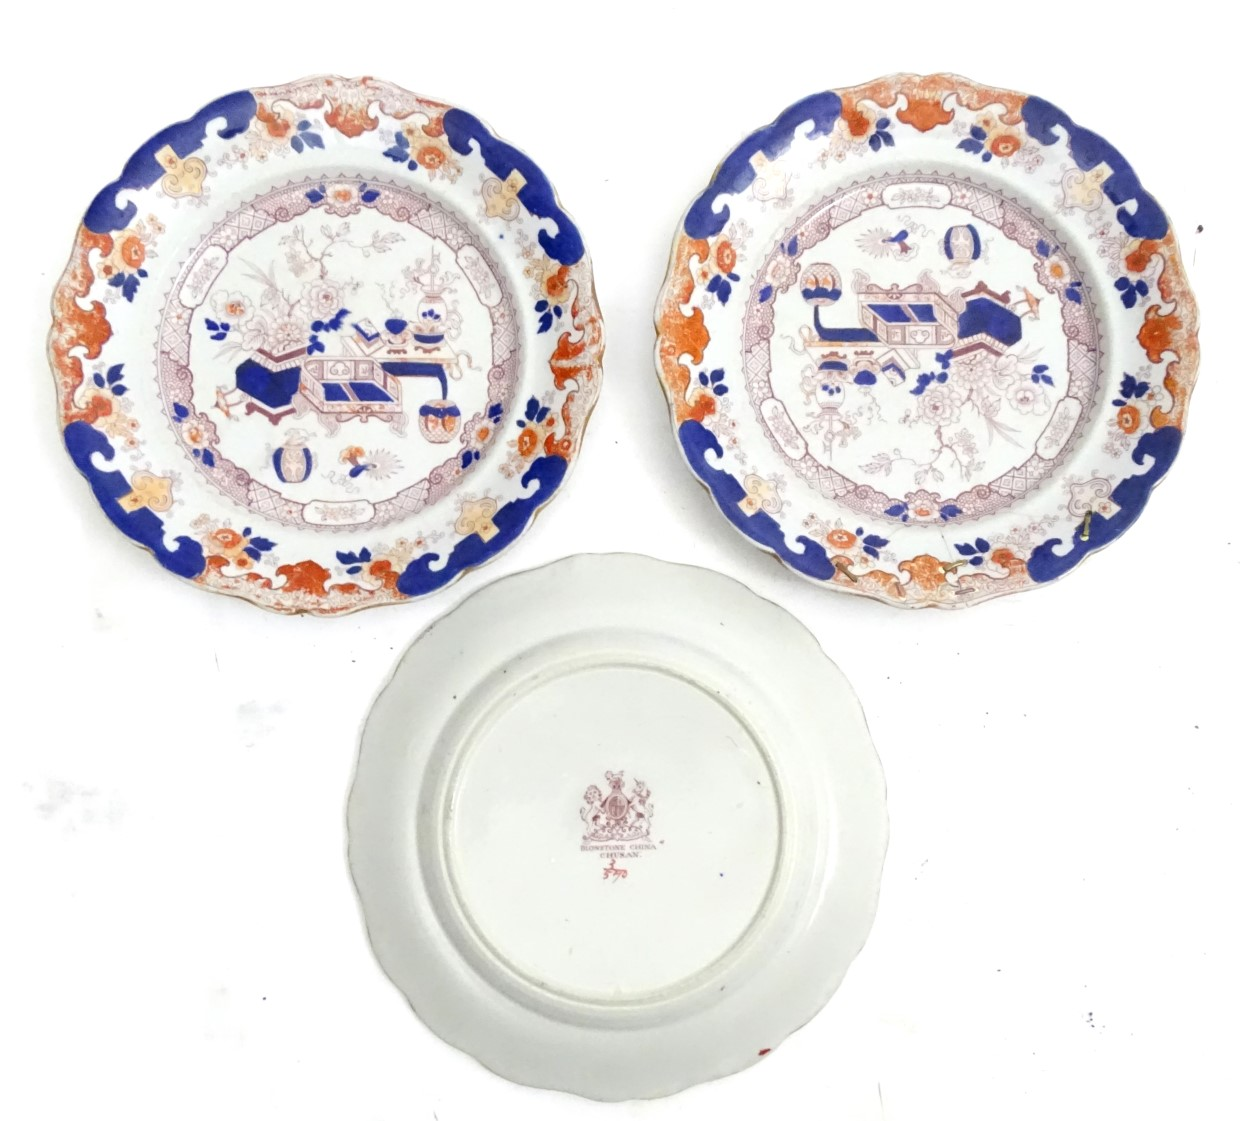 Lot 86 - An assorted quantity of iron stone china dinner wares with a chinoiserie scene,